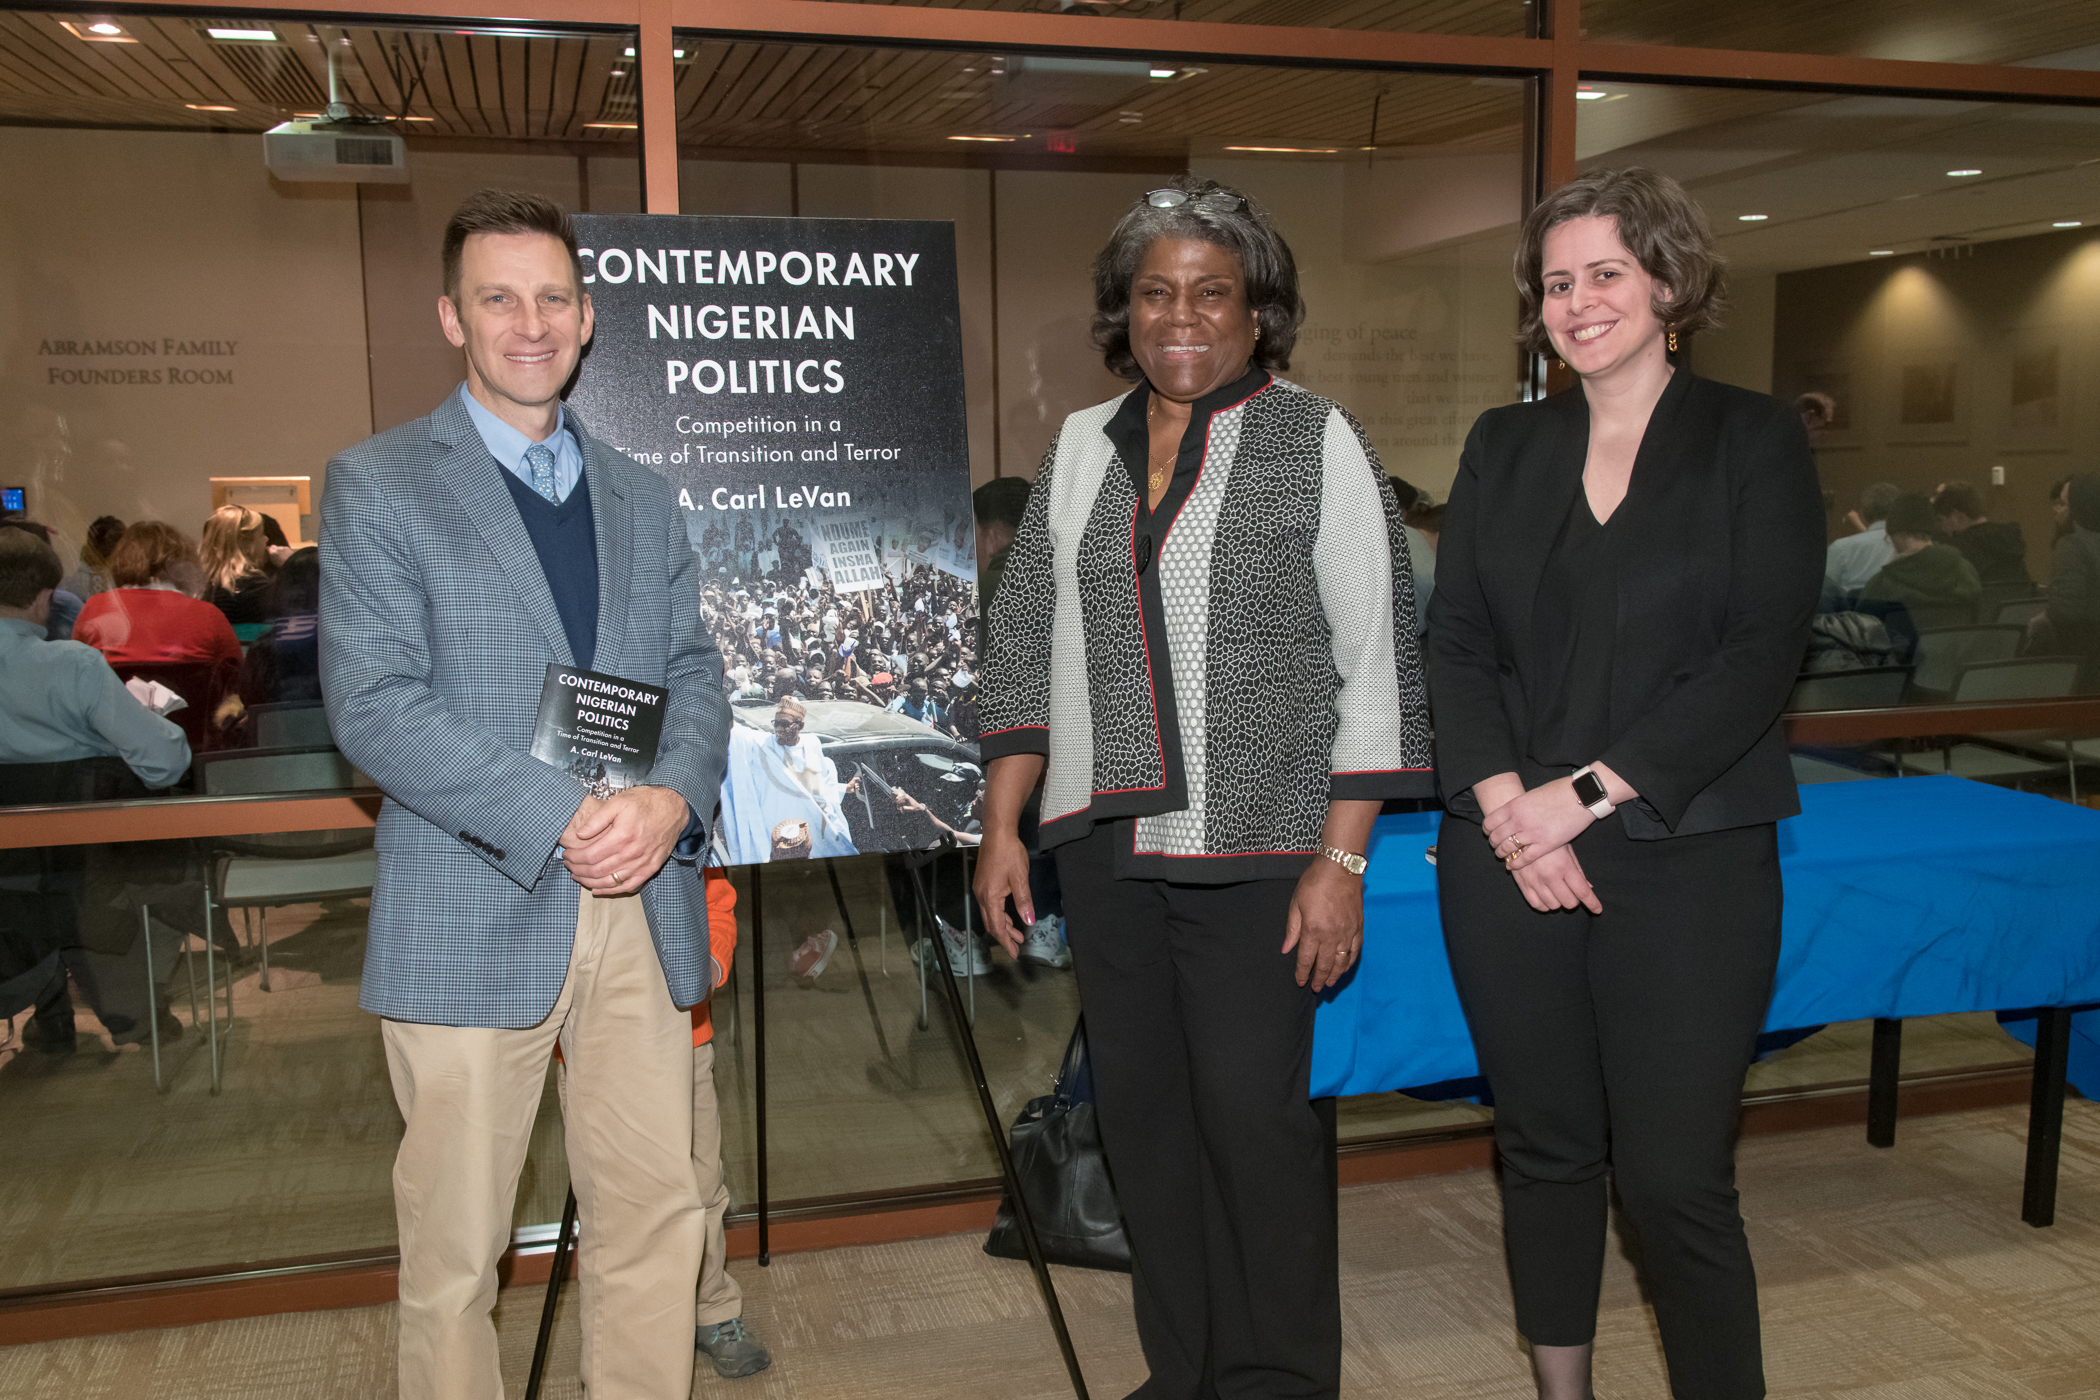 Professor Carl LeVan, Ambassador Linda Thomas-Greenfield, and reporter Jennifer Amur